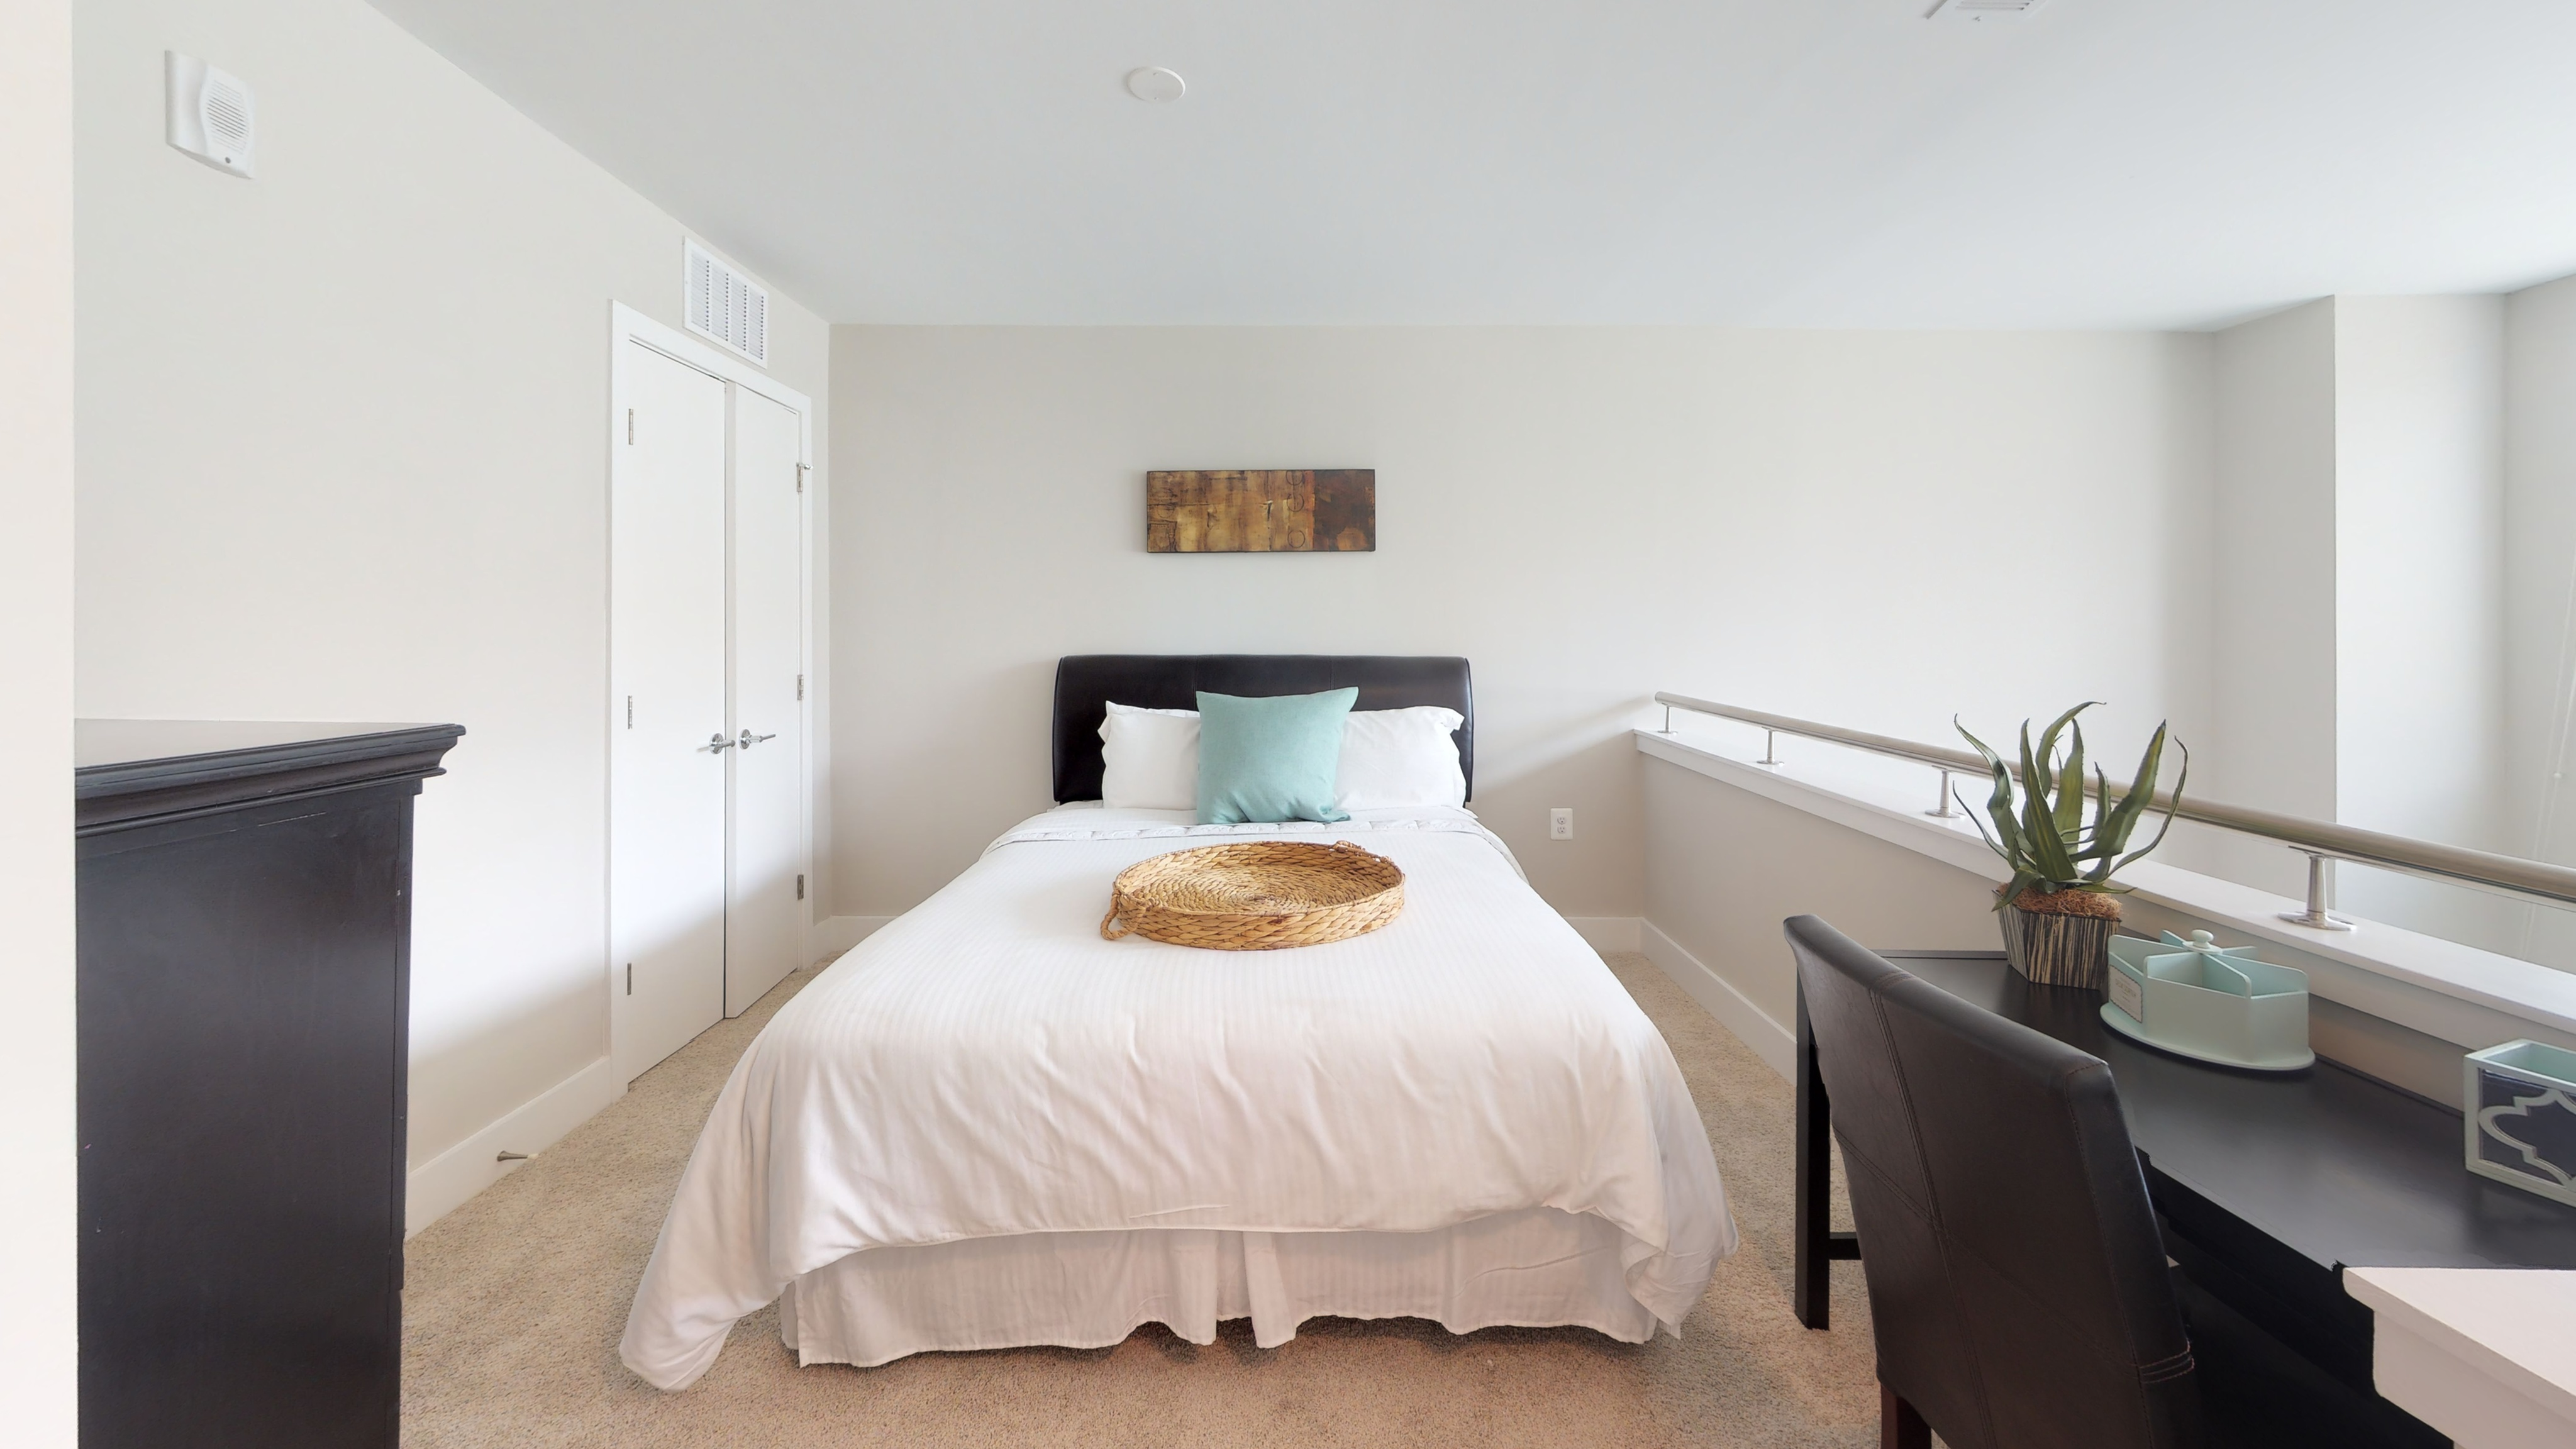 Loft bedroom with white bed and wood desk